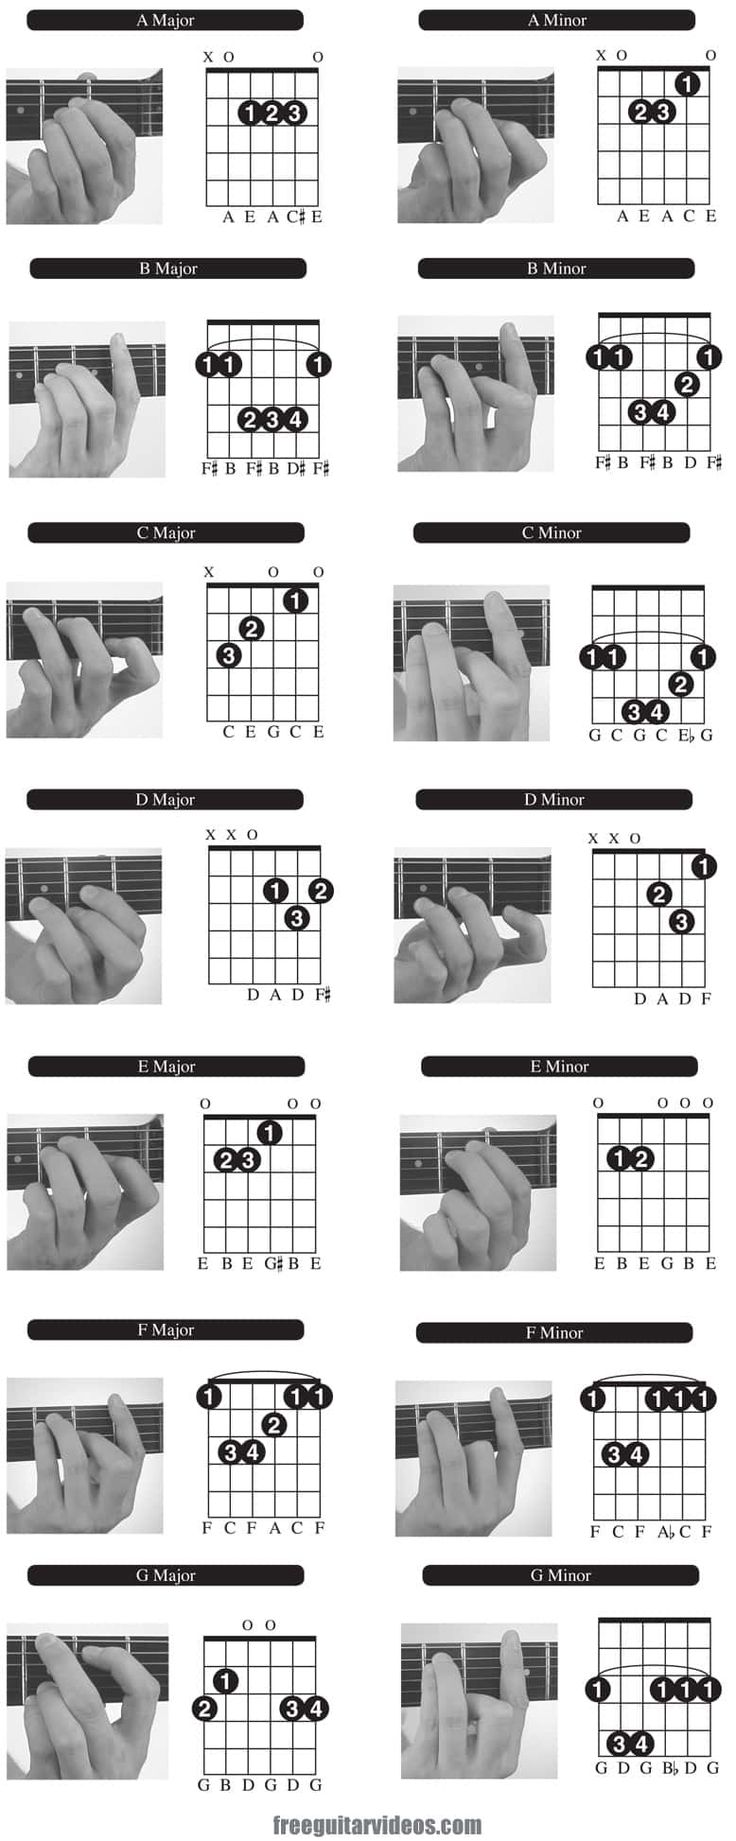 The Best Way To Learn The Notes On The Guitar Fretboard ...